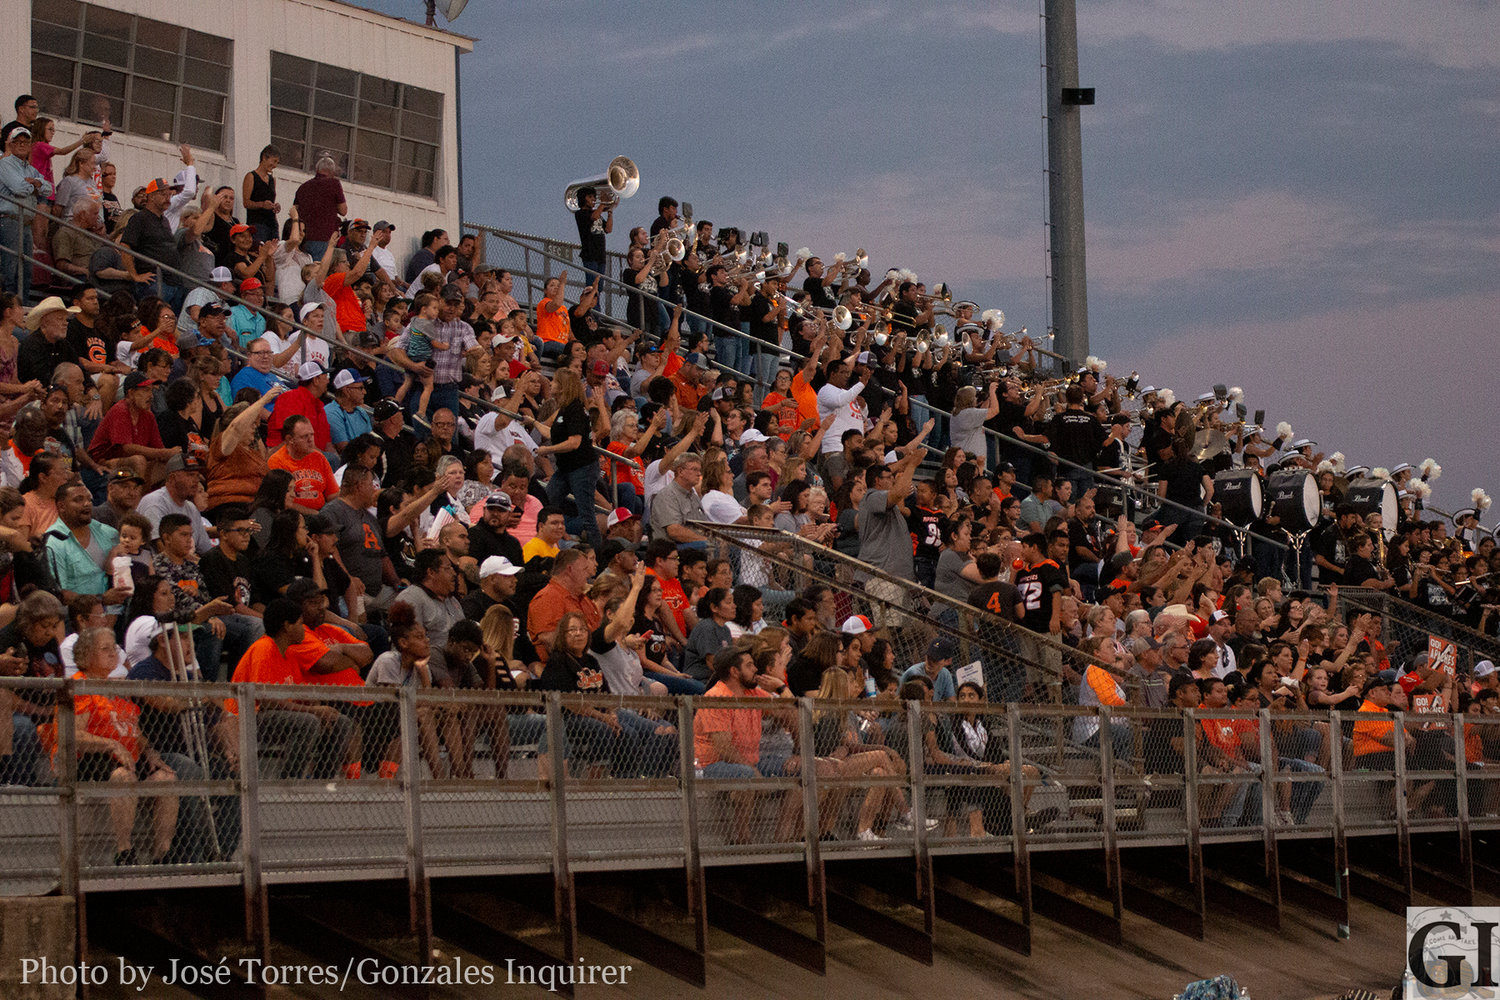 Gonzales Apache fans filled up the away stands in Gonzales' 27-25 victory over Yoakum at Bulldog Stadium.